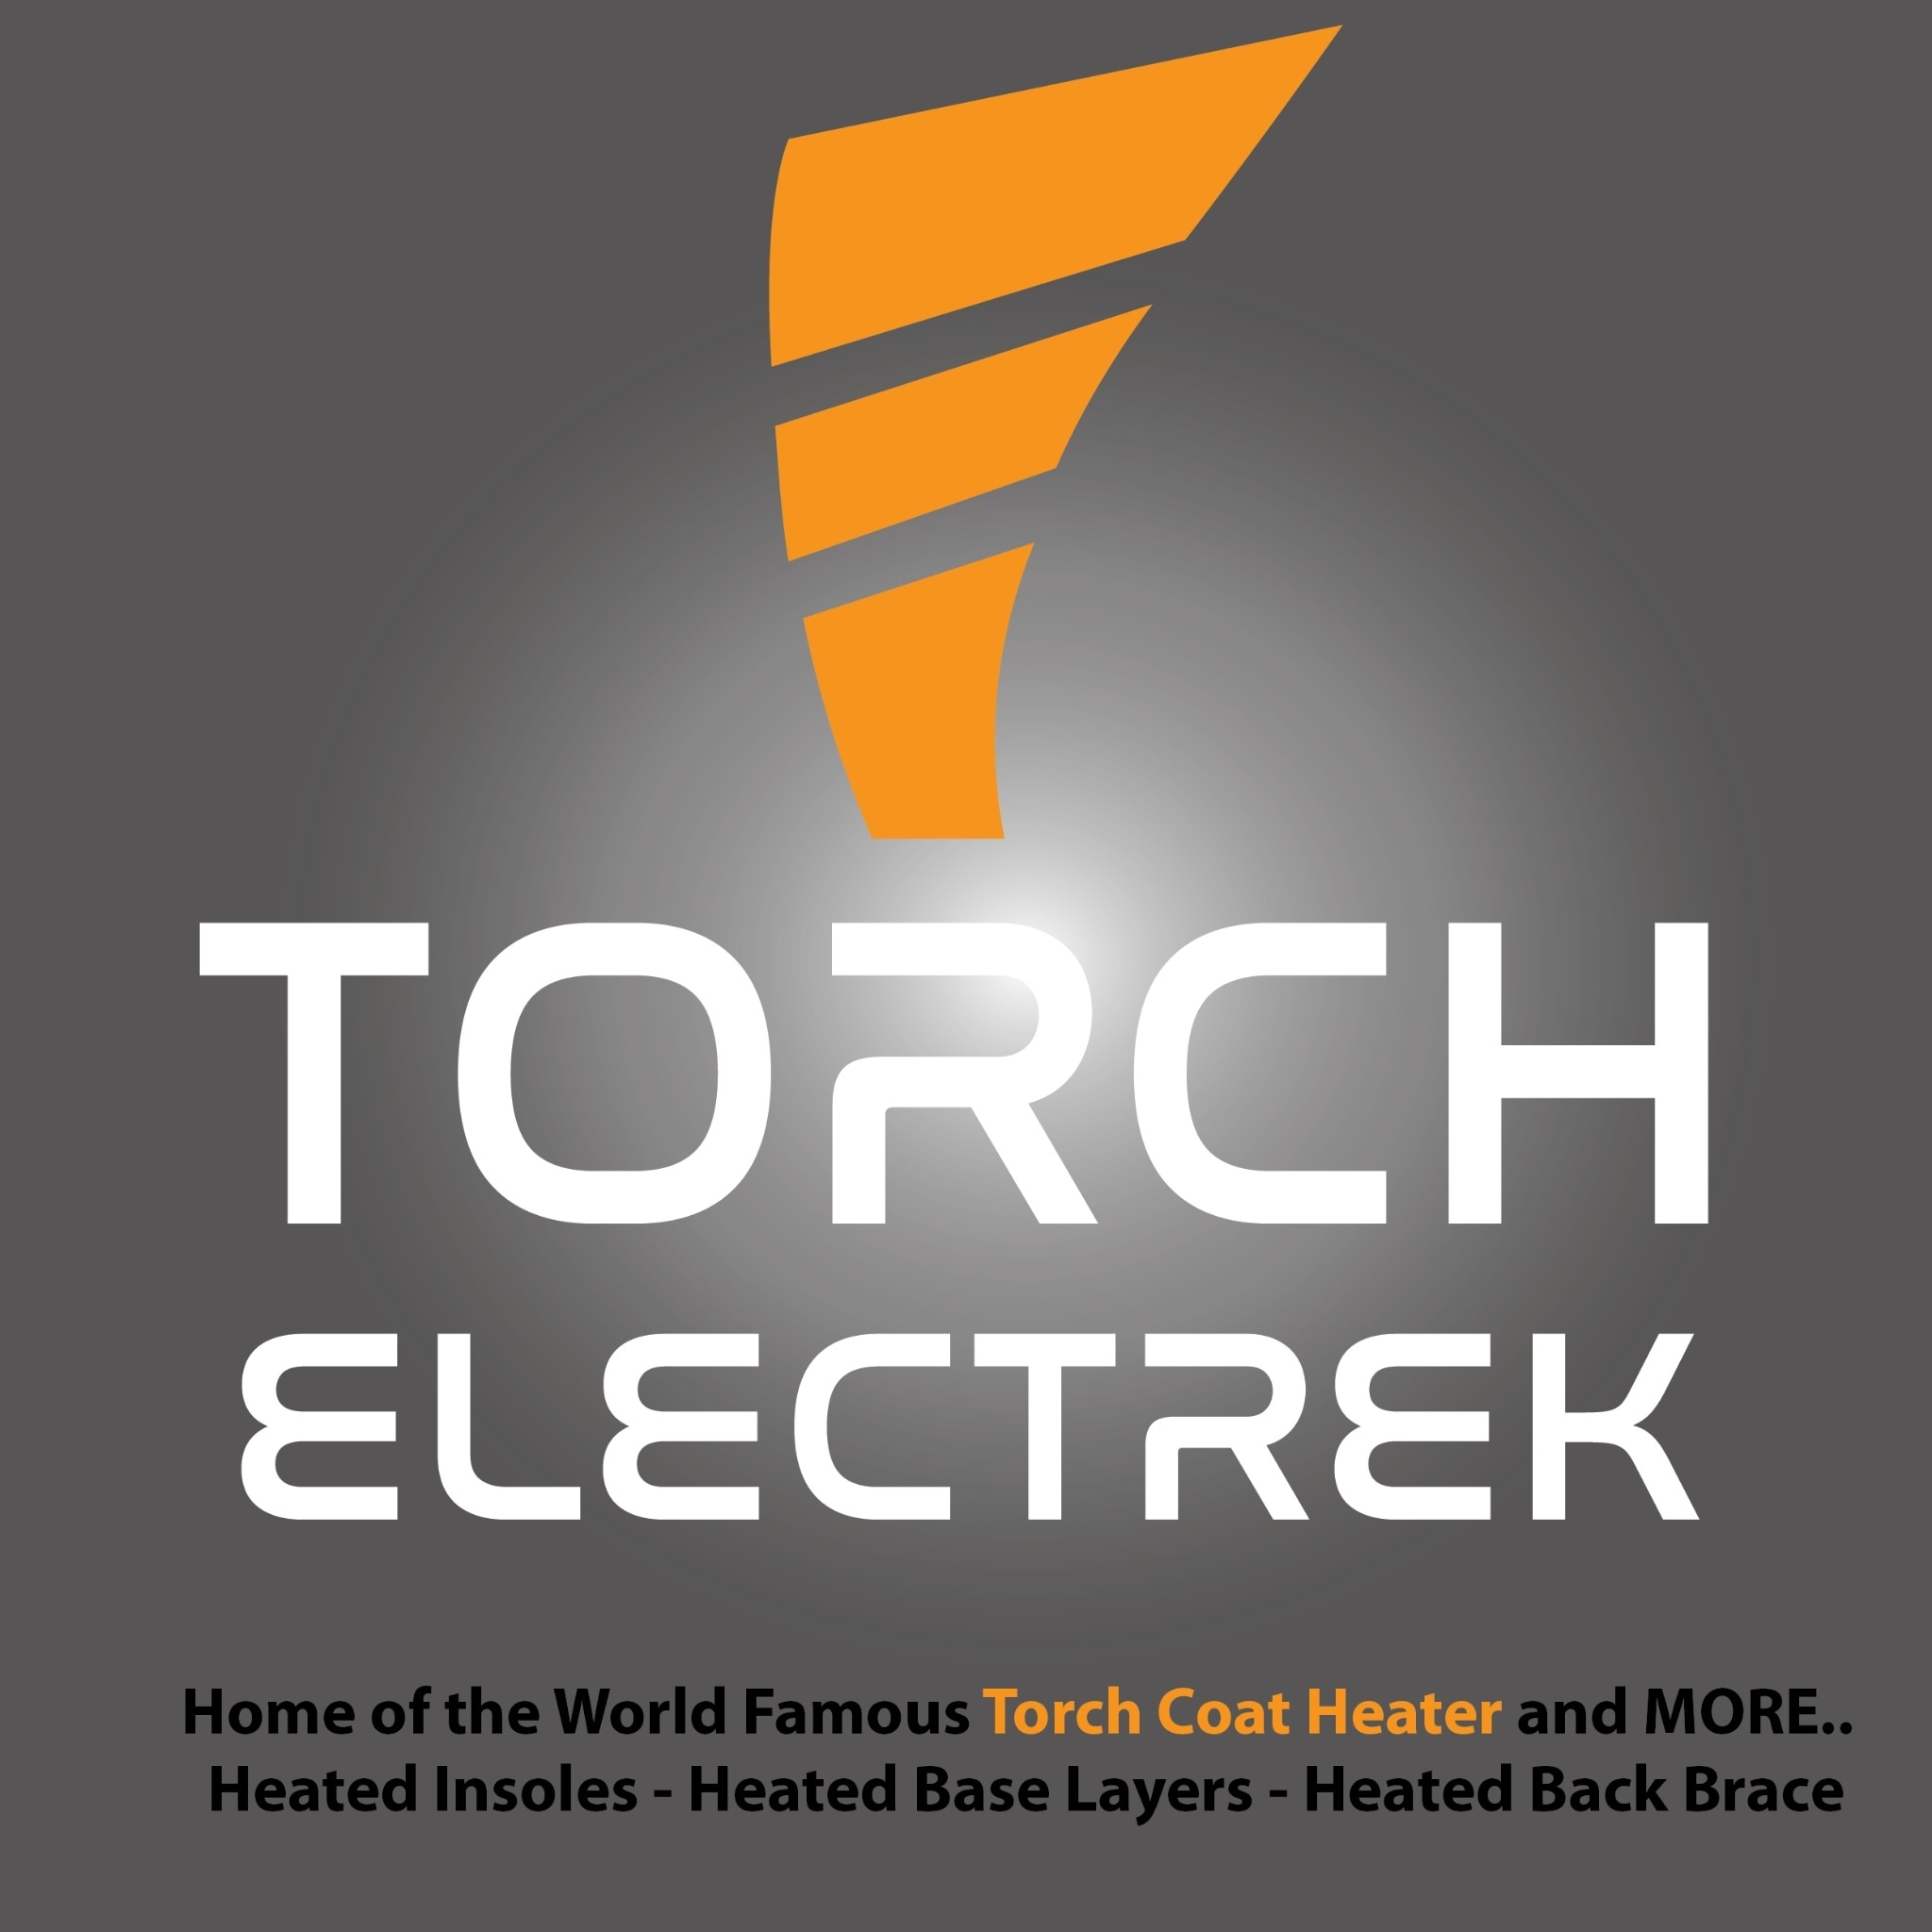 Torch Electrek promo codes